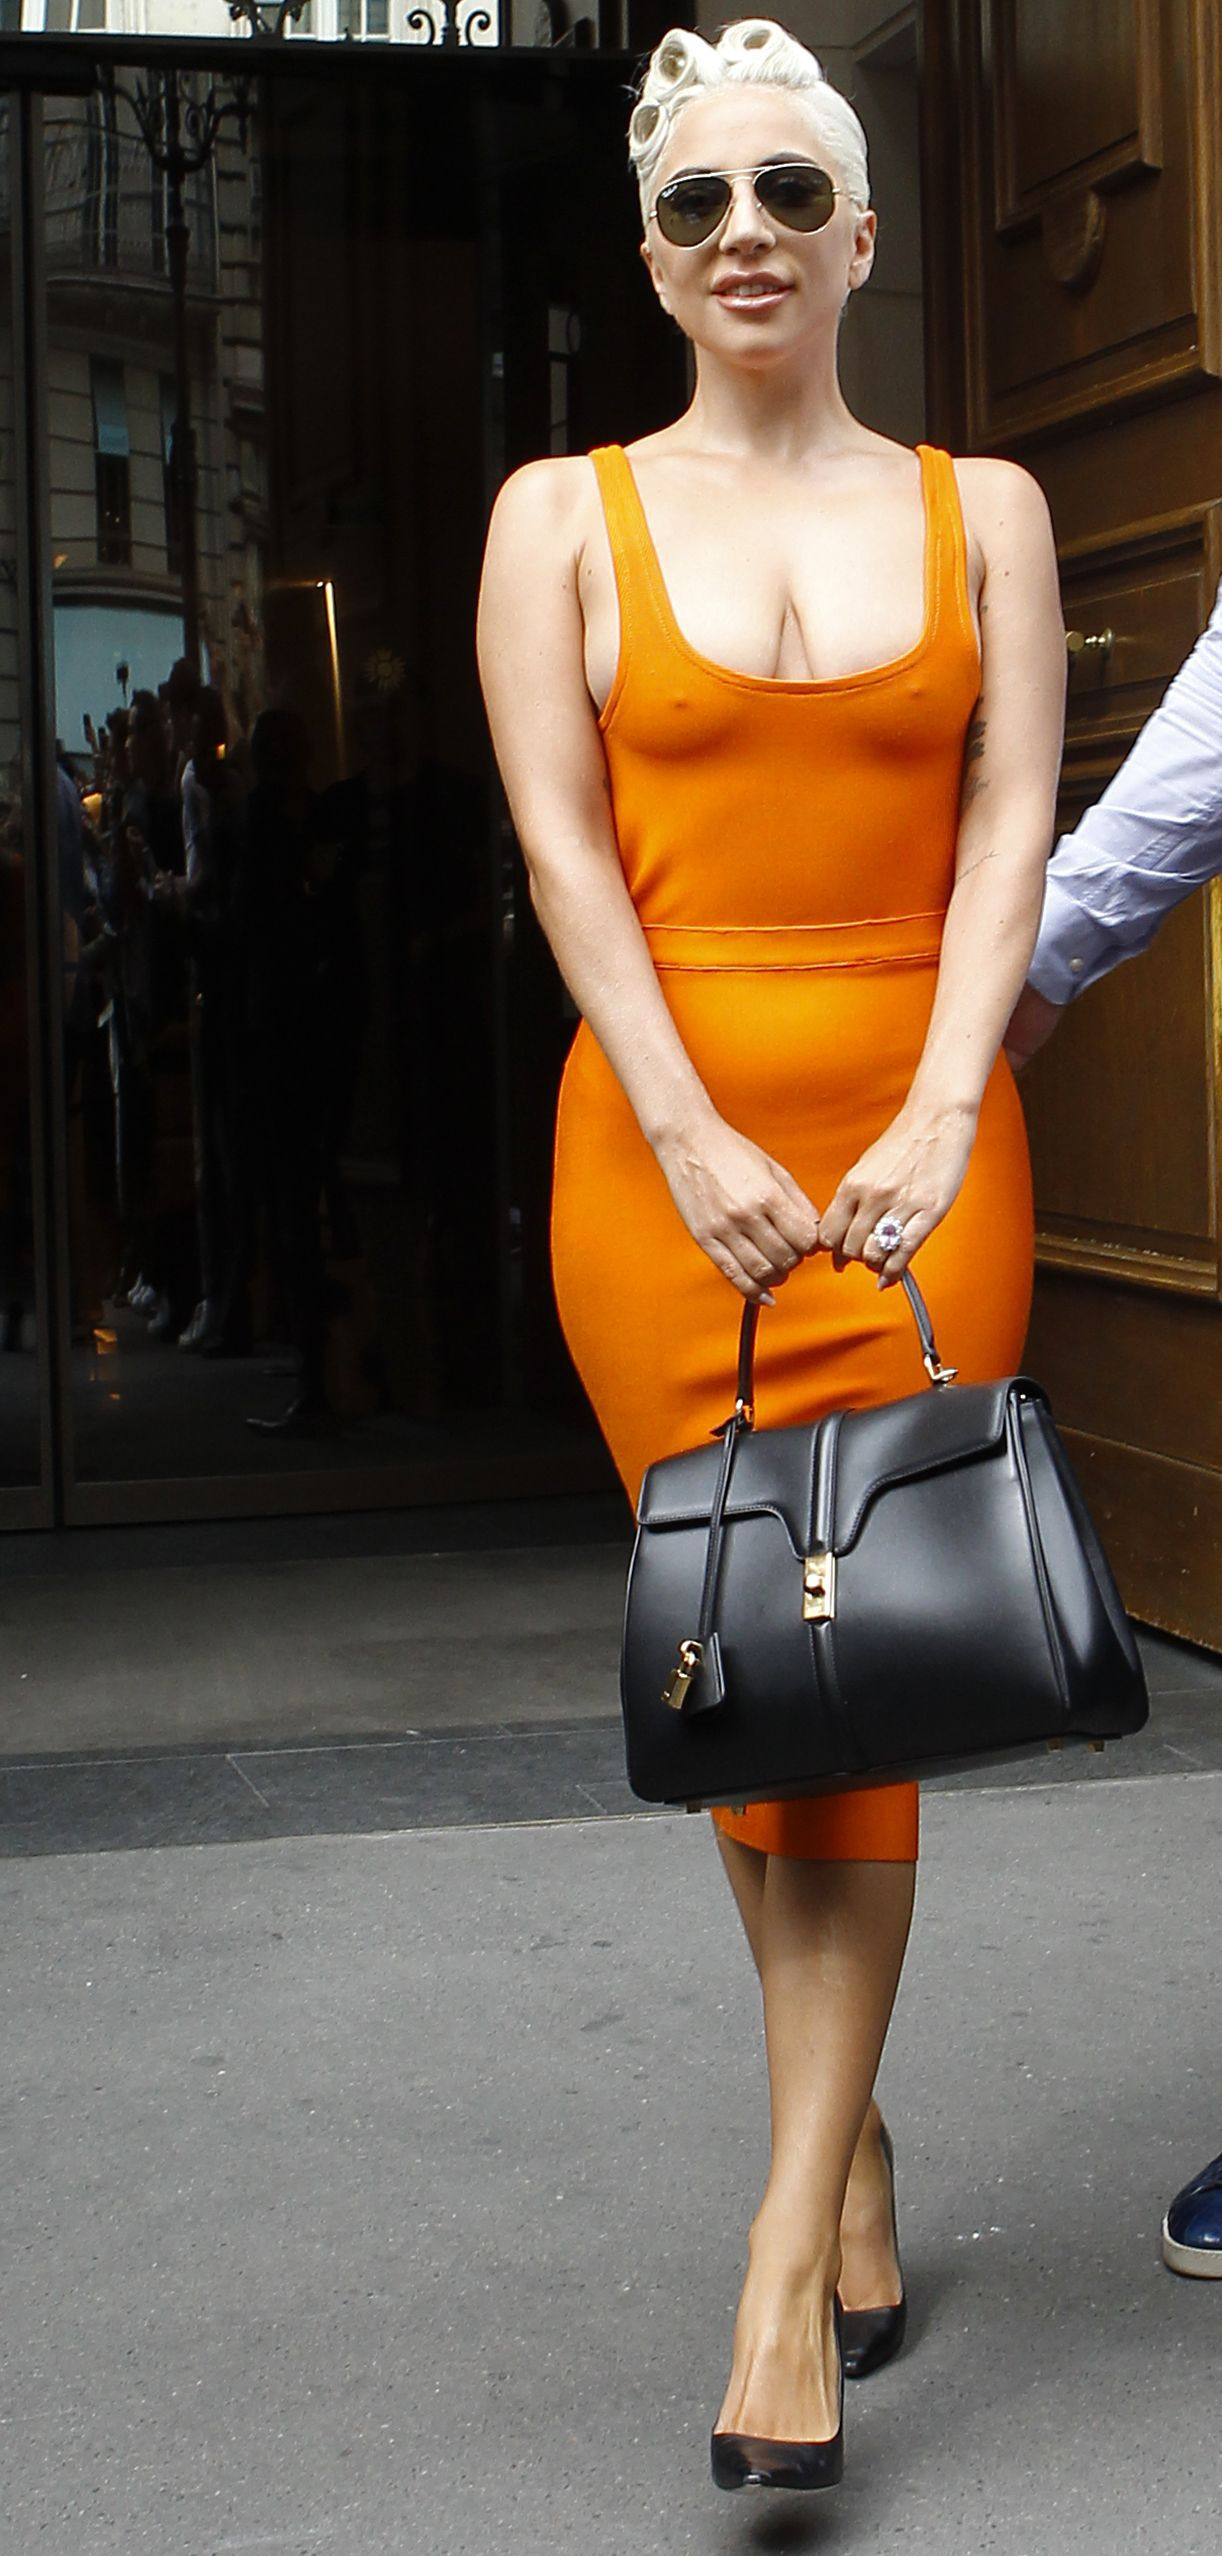 Lady Gaga was spotted last week in Paris carrying a handbag designed by Hedi Slimane for Celine